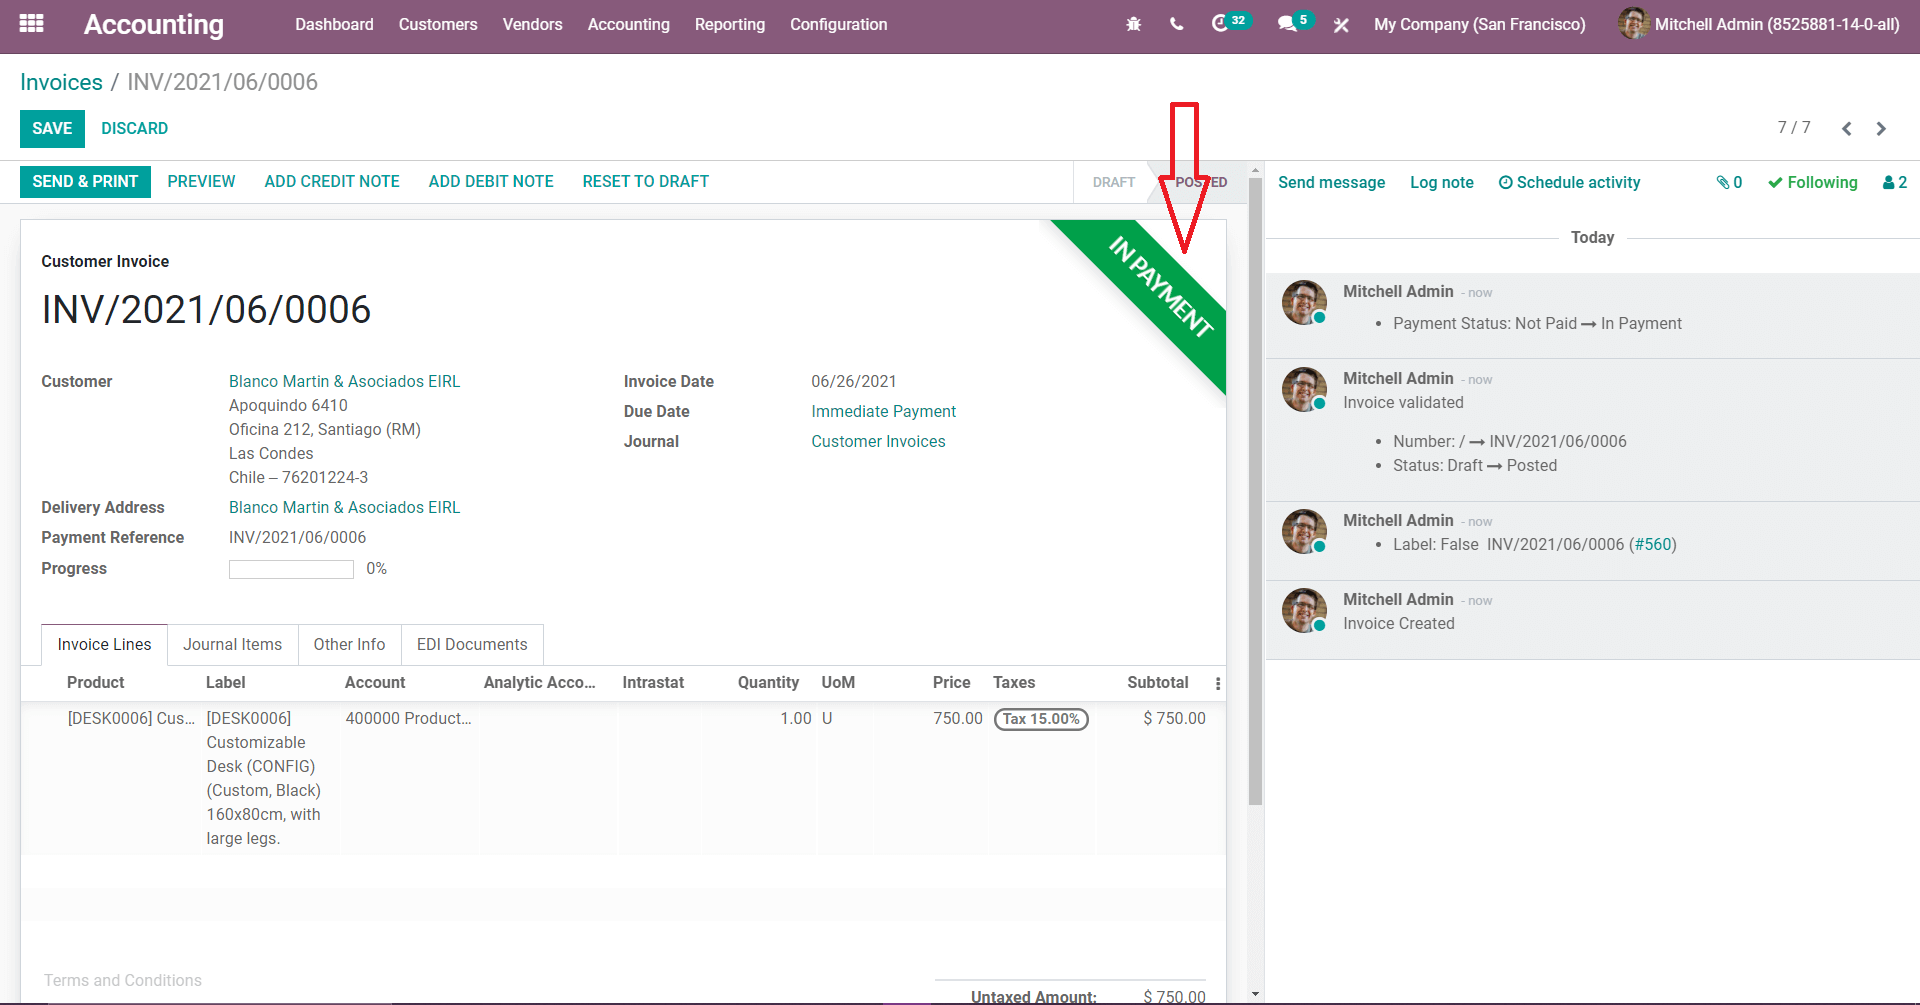 what-are-the-new-features-in-odoo-14-accounting